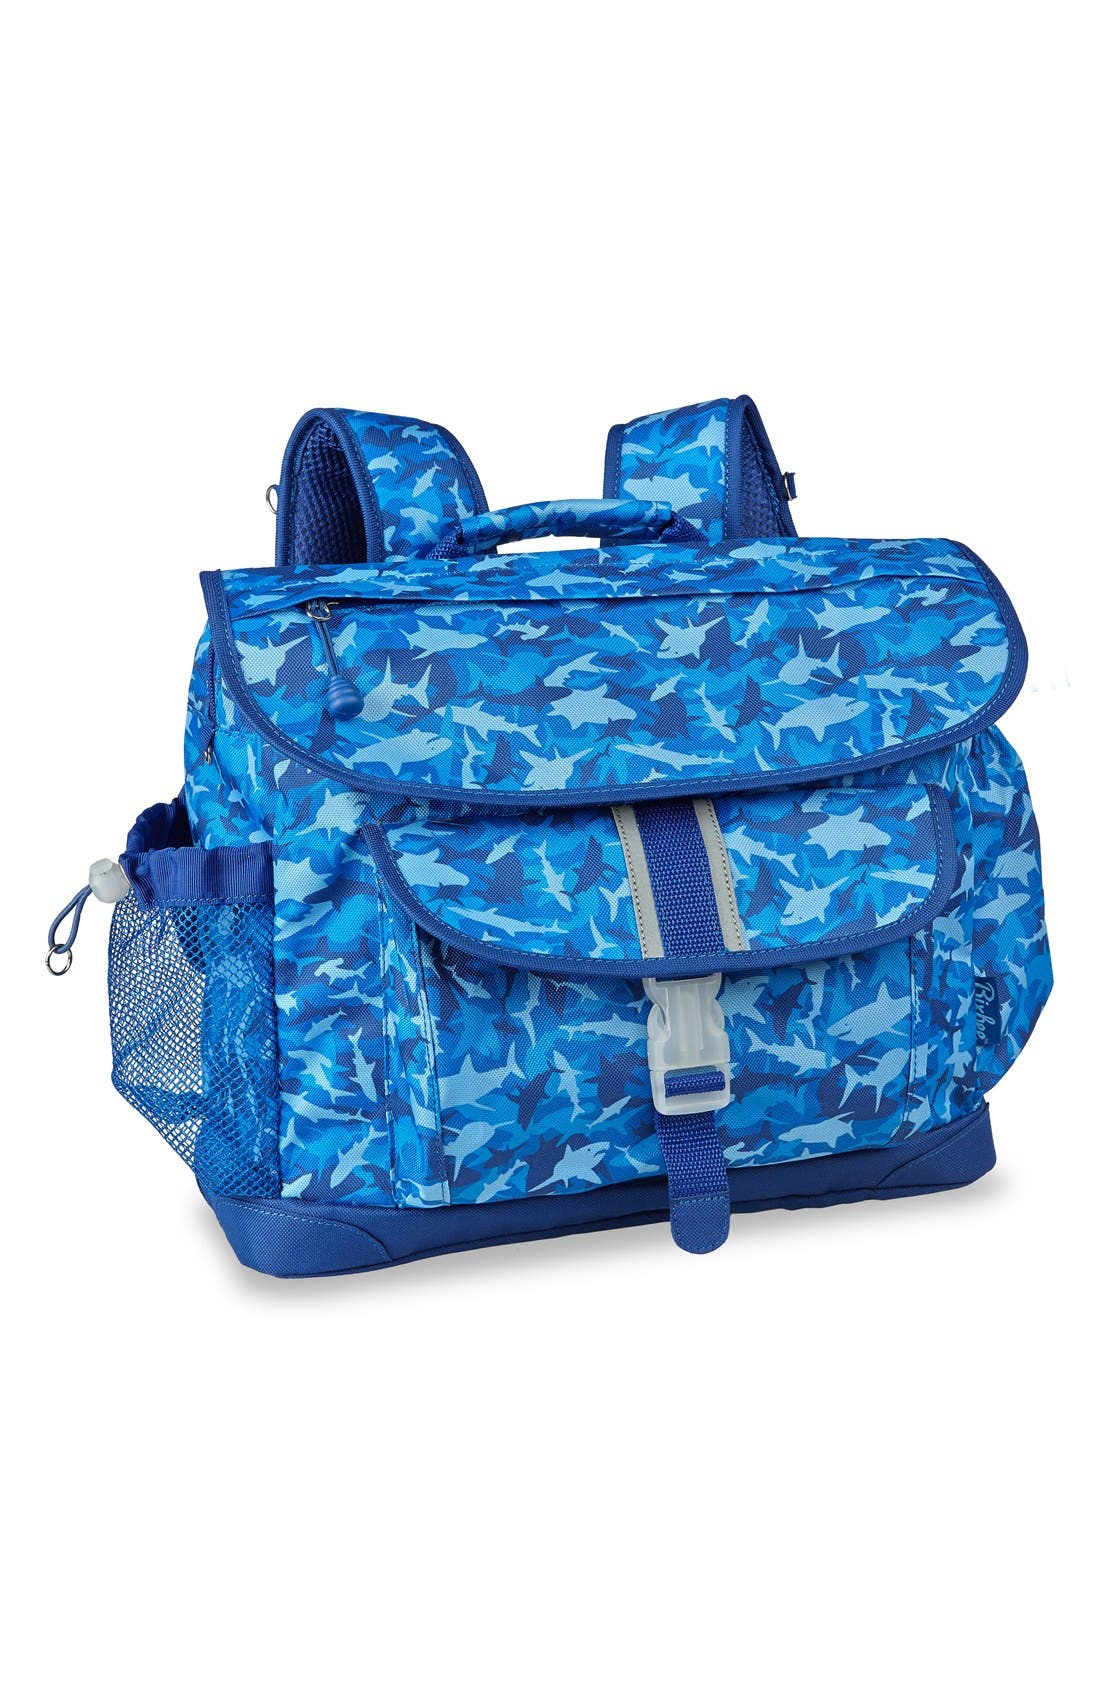 Bixbee 'Medium Shark Camo' Water Resistant Backpack (Kids)